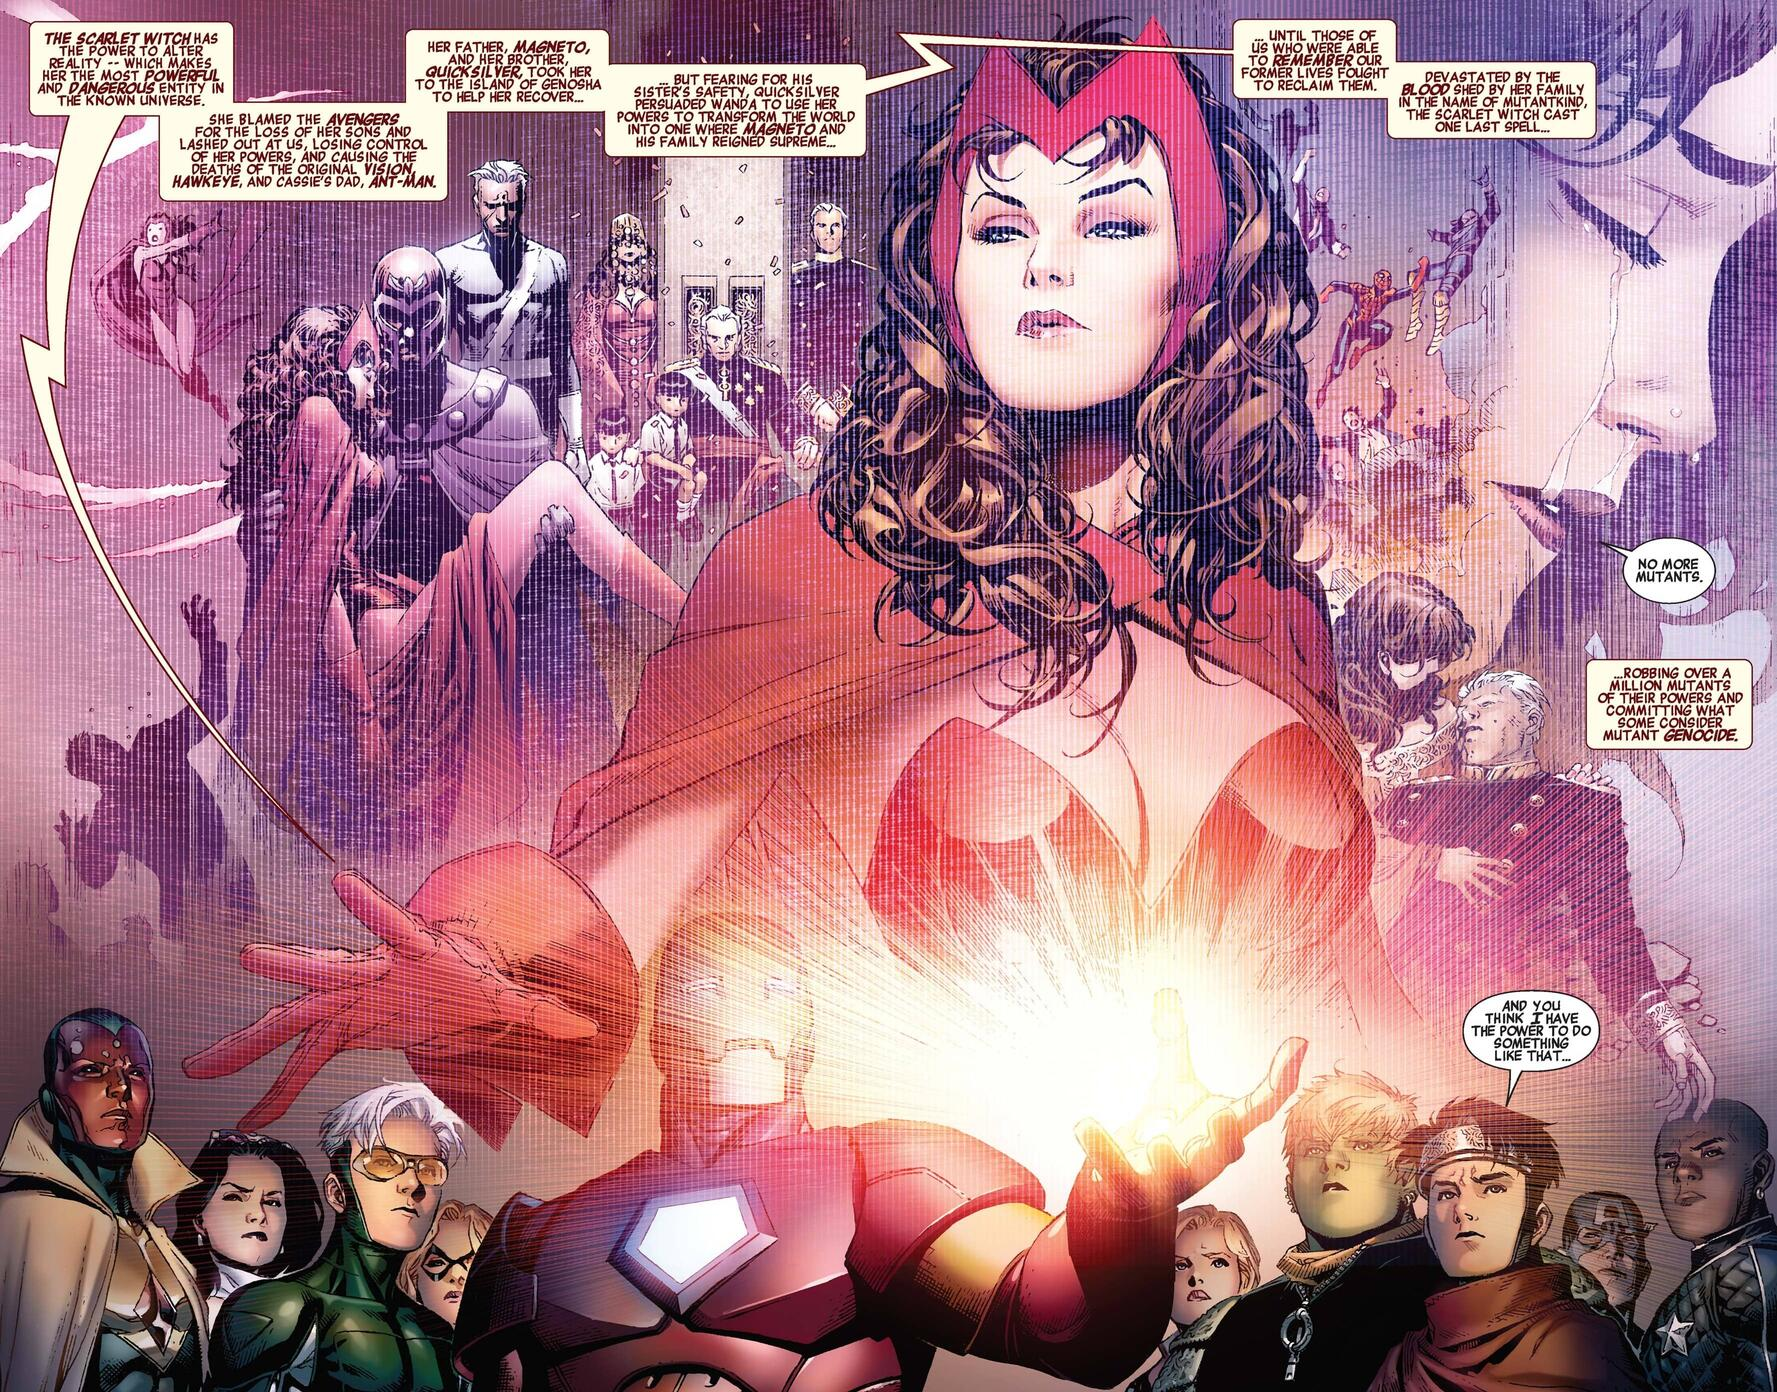 A recap of events past from AVENGERS: THE CHILDREN'S CRUSADE (2010) #1.